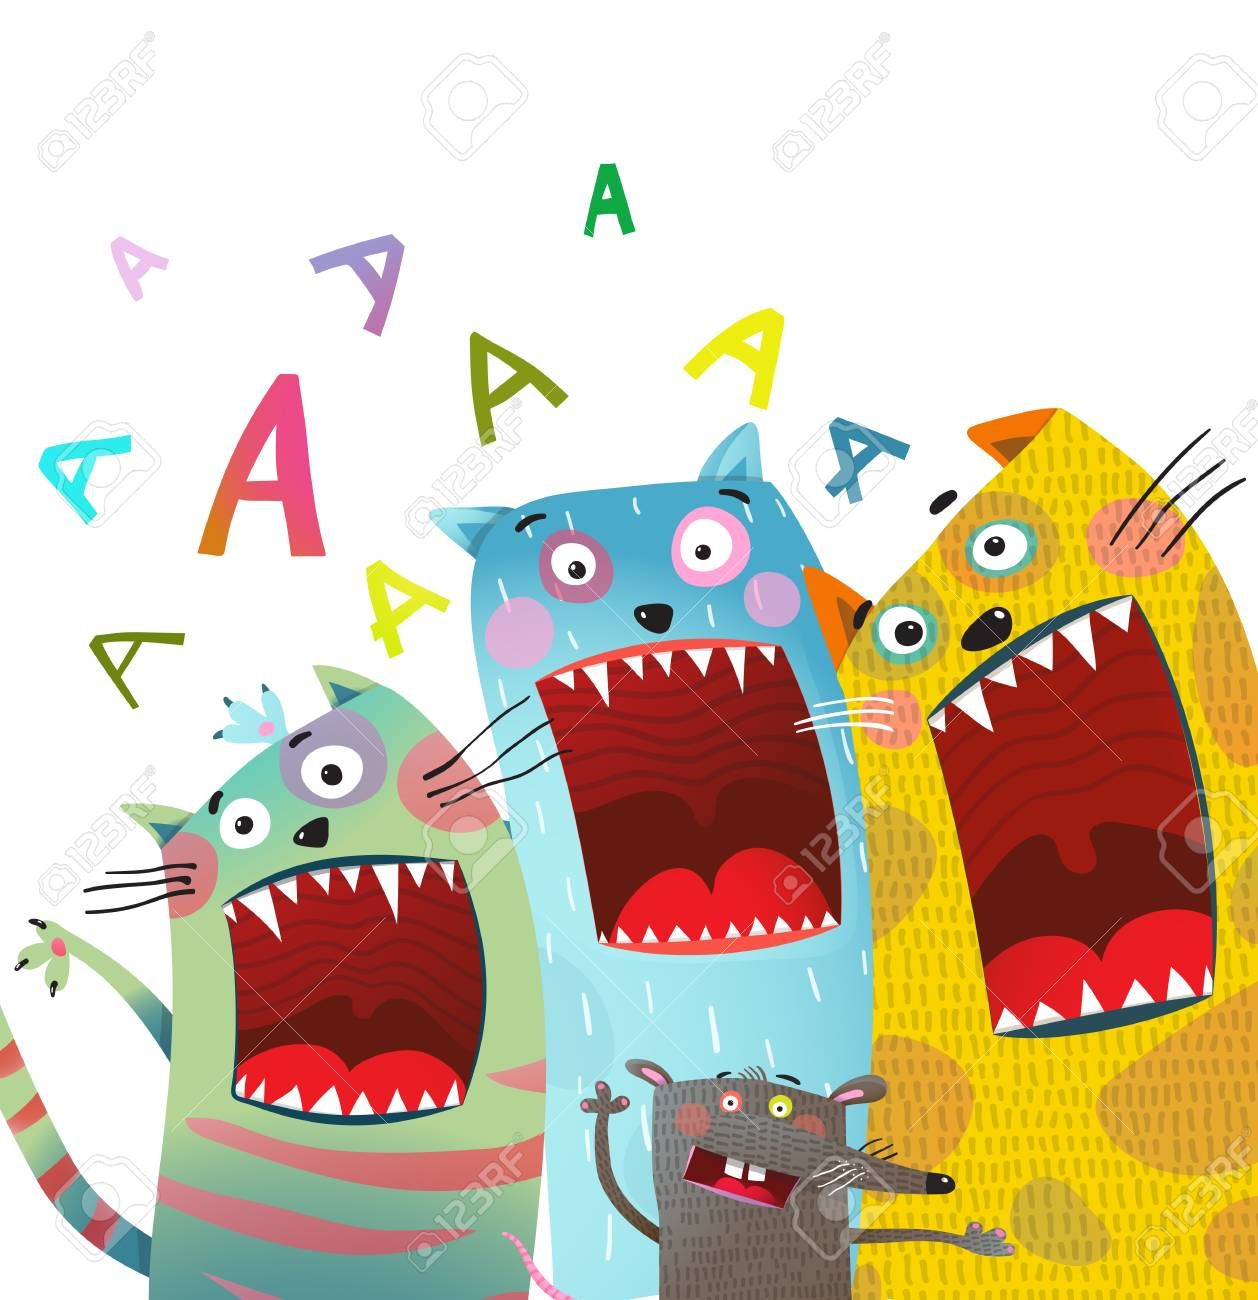 Cats and rat song singing mouth open. Vector illustration. - 94897546